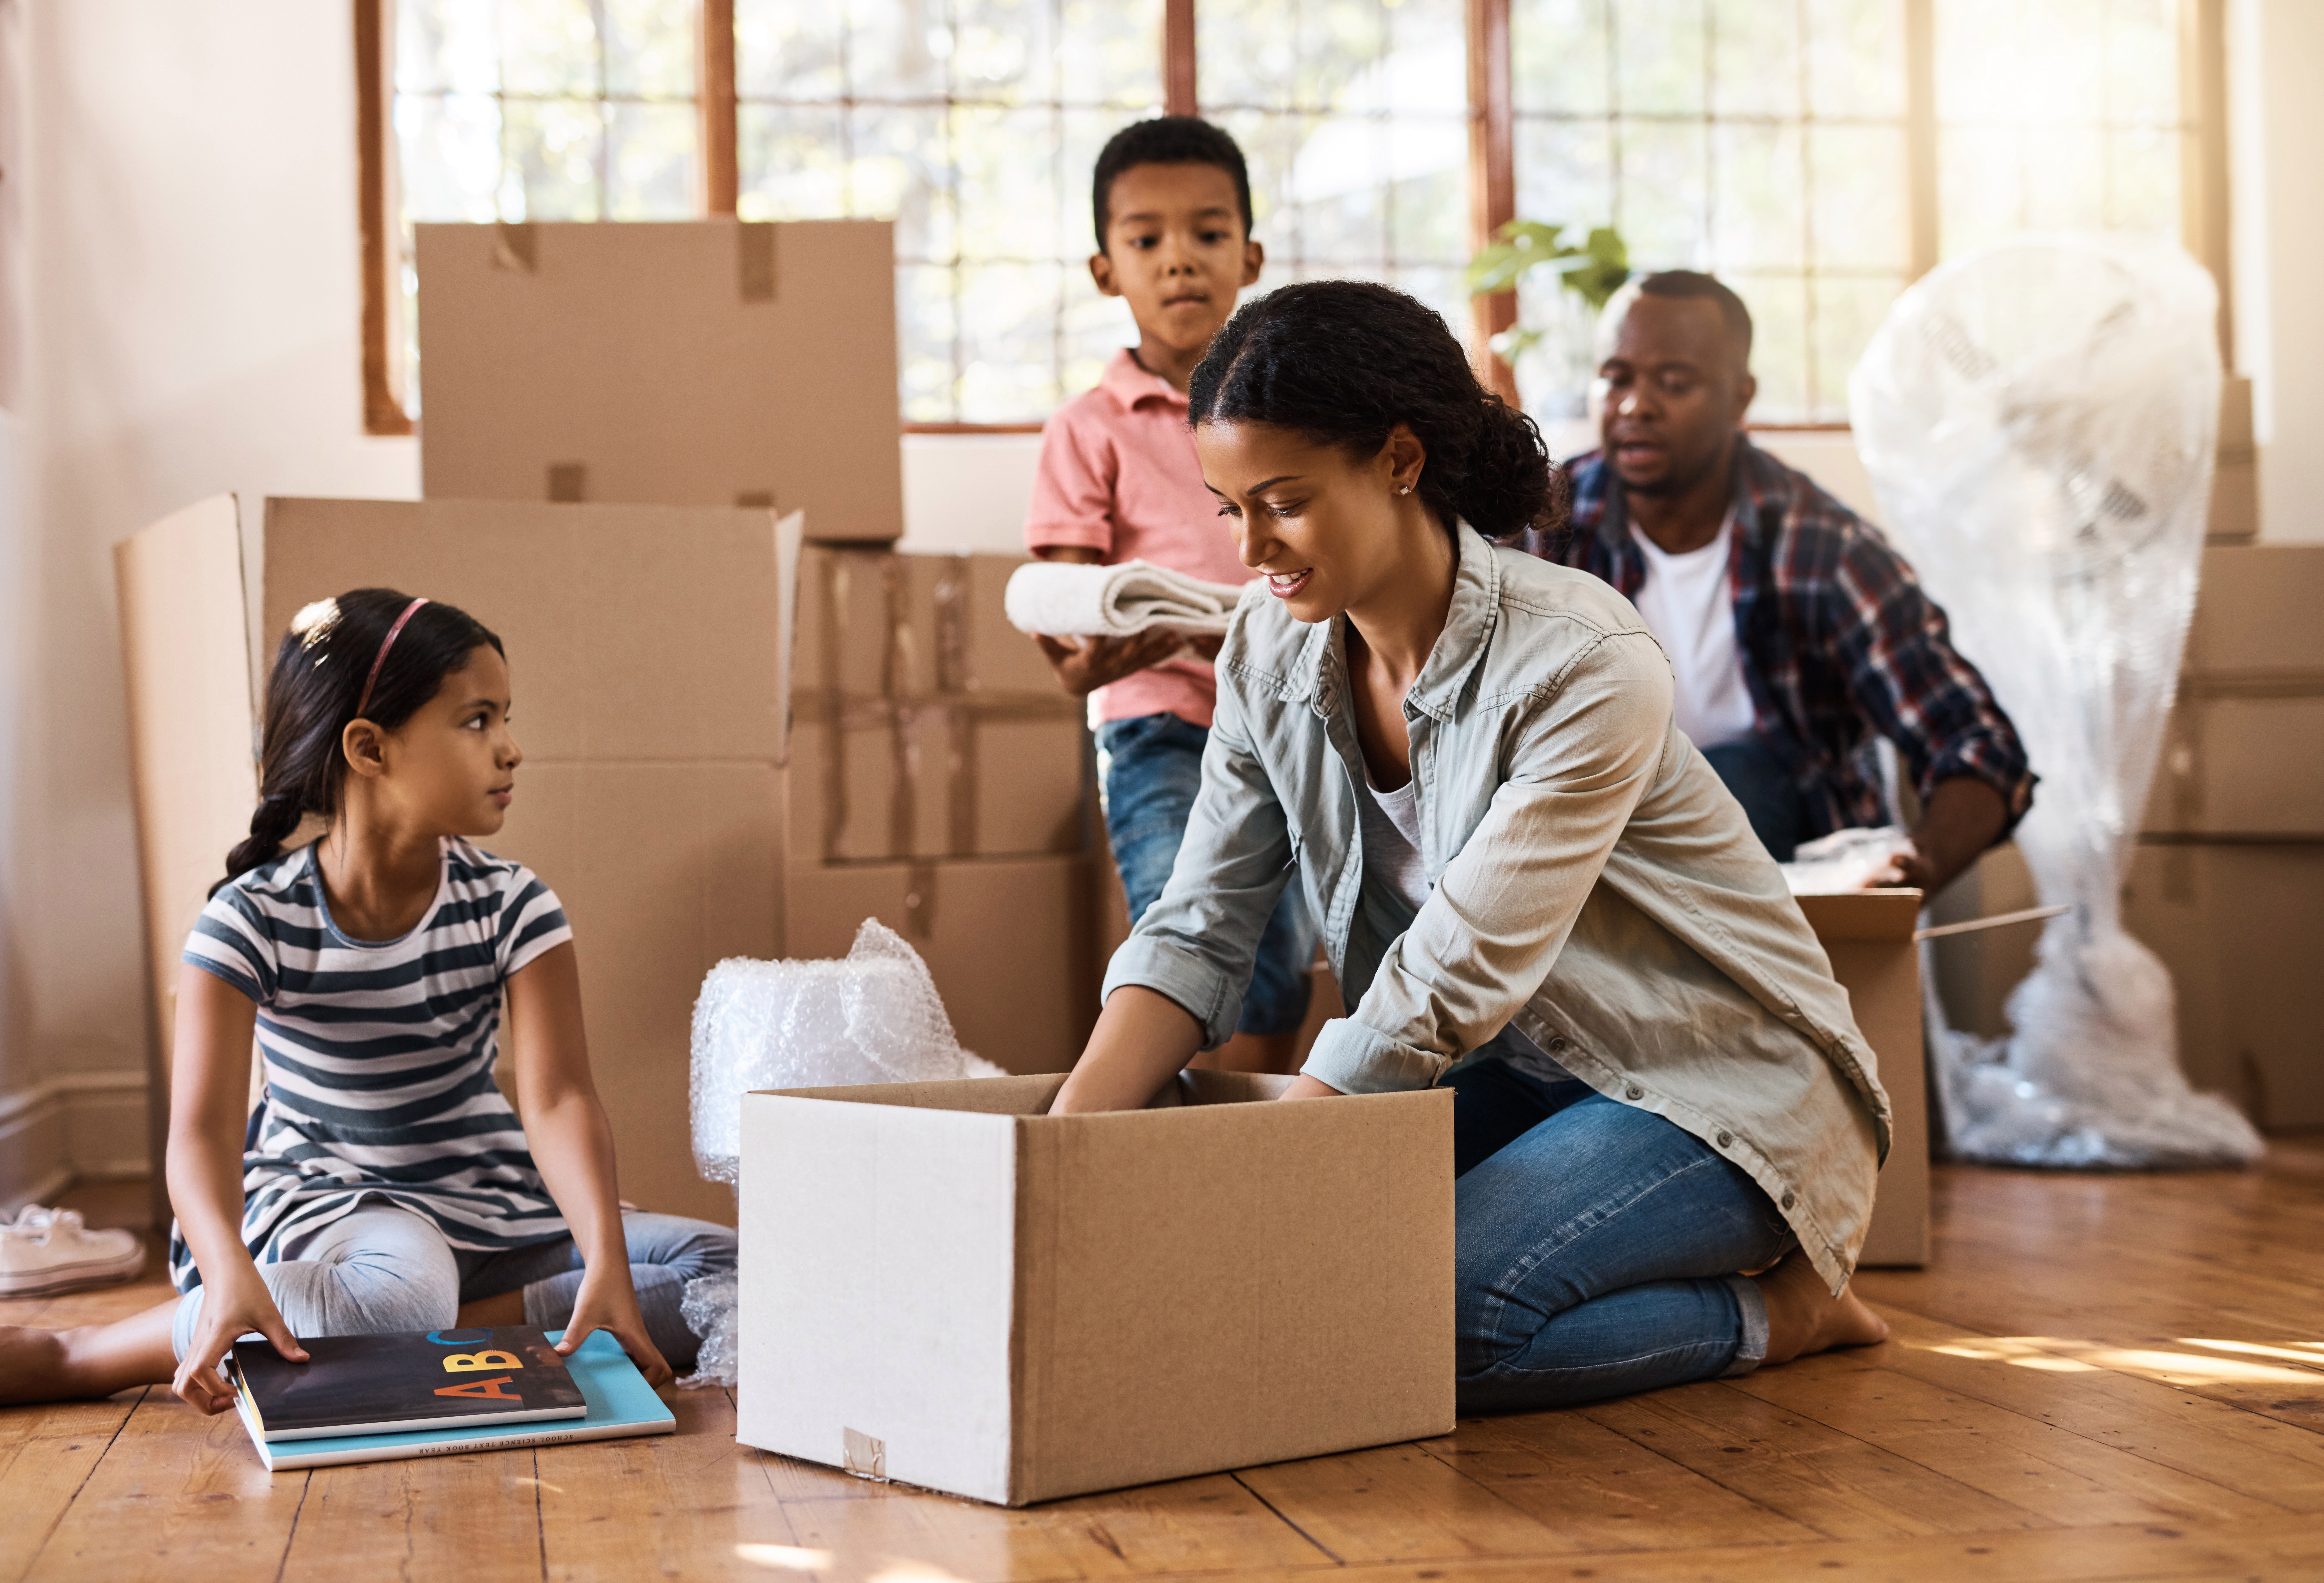 It is an ideal time to move for those looking to upsize for their children